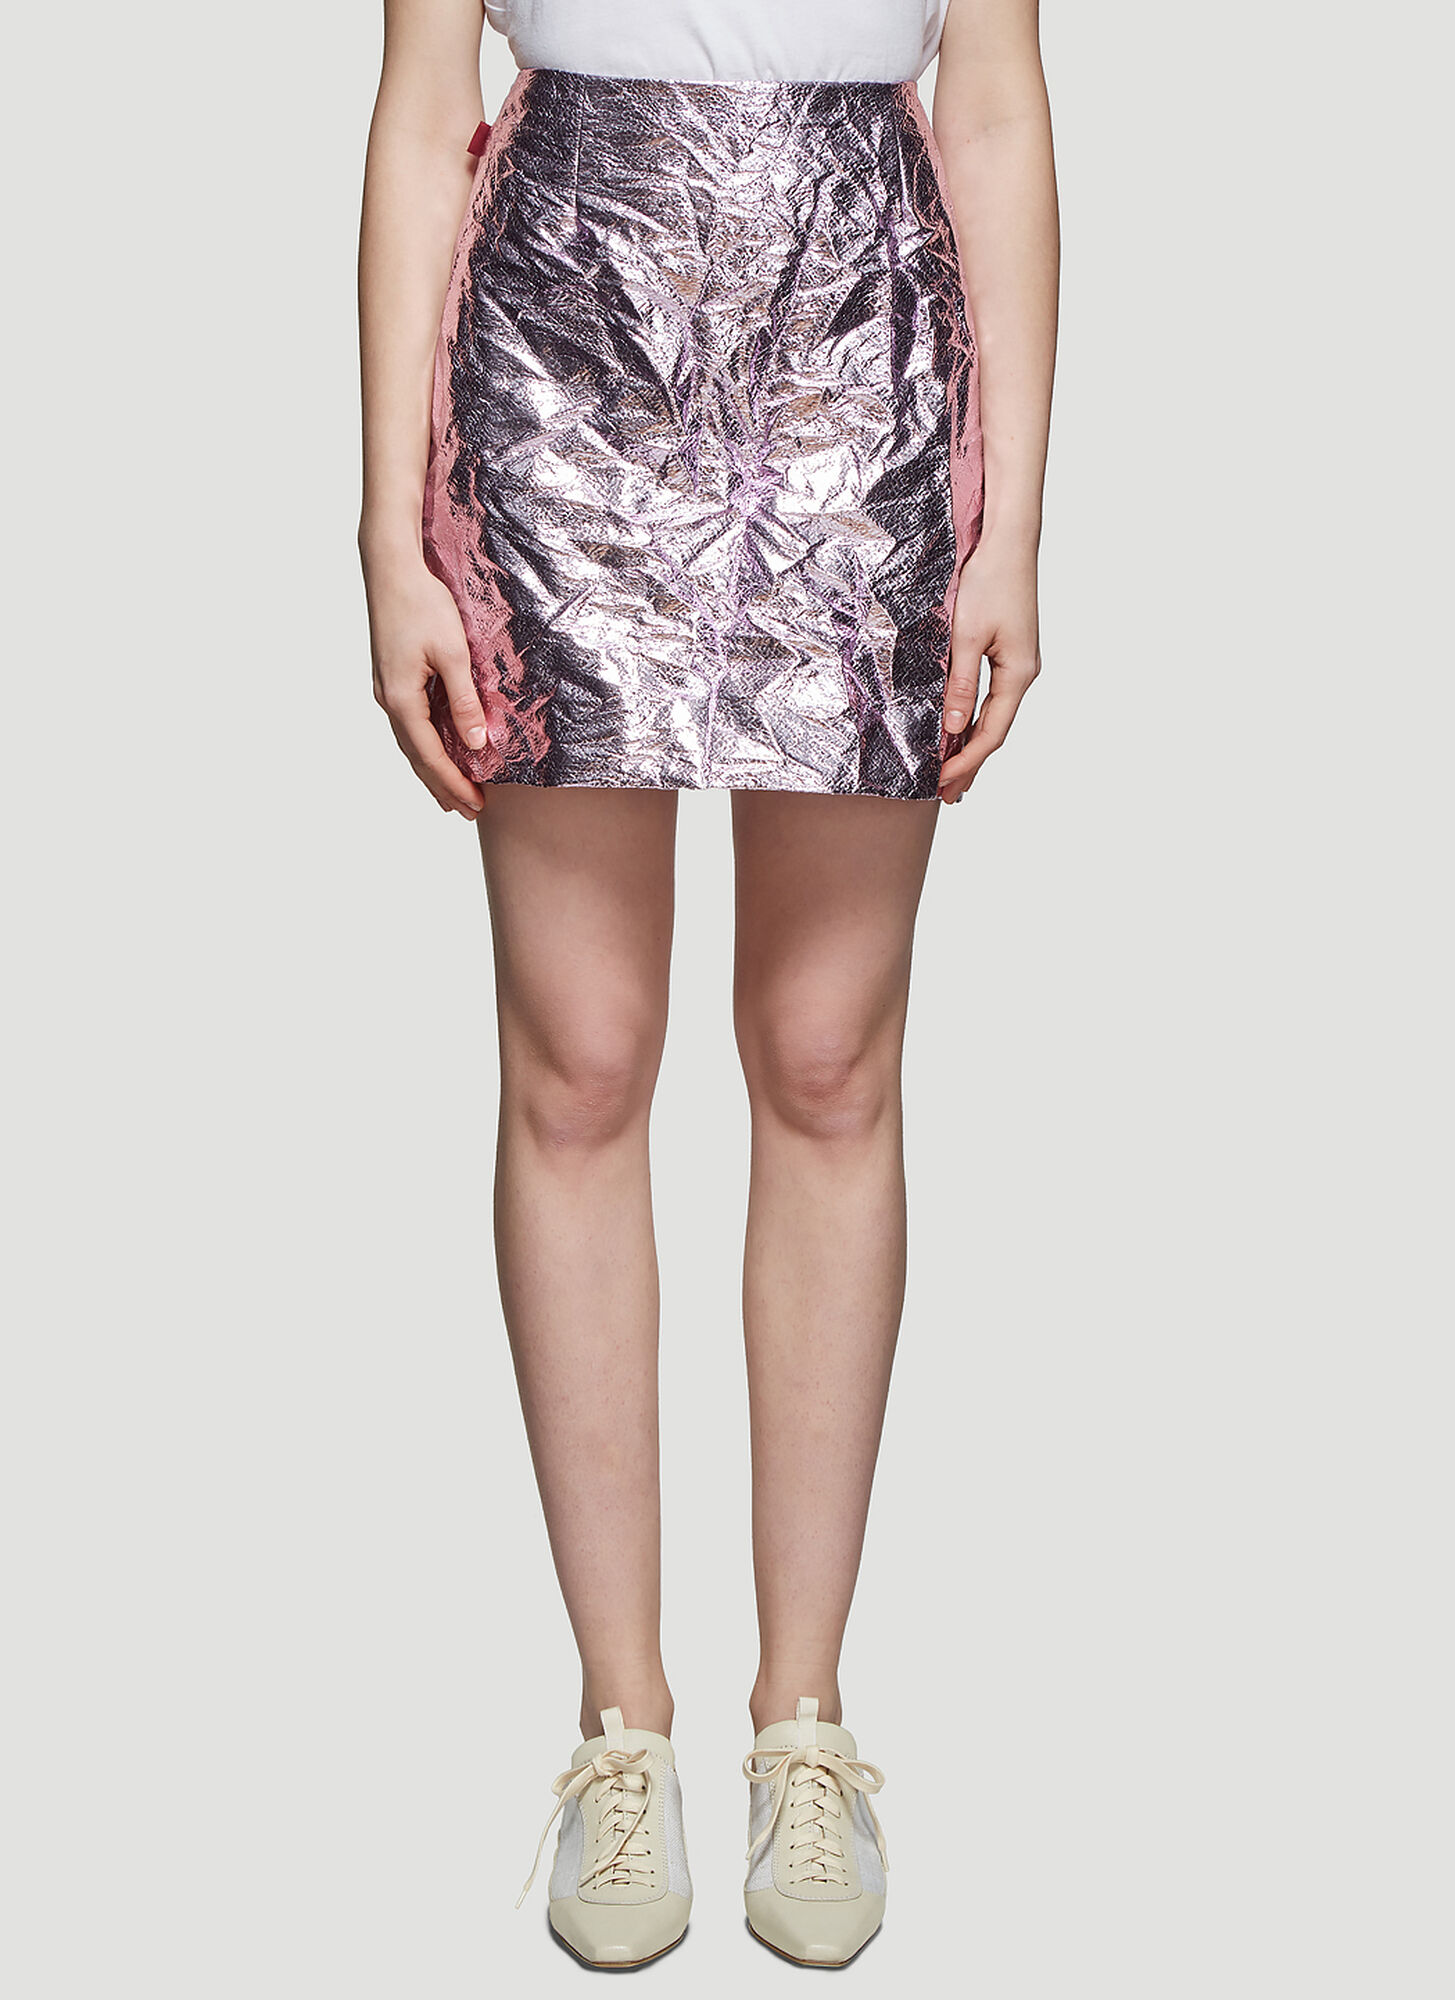 Sies Marjan Desiree Laminated Crinkle Mini Skirt in Pink